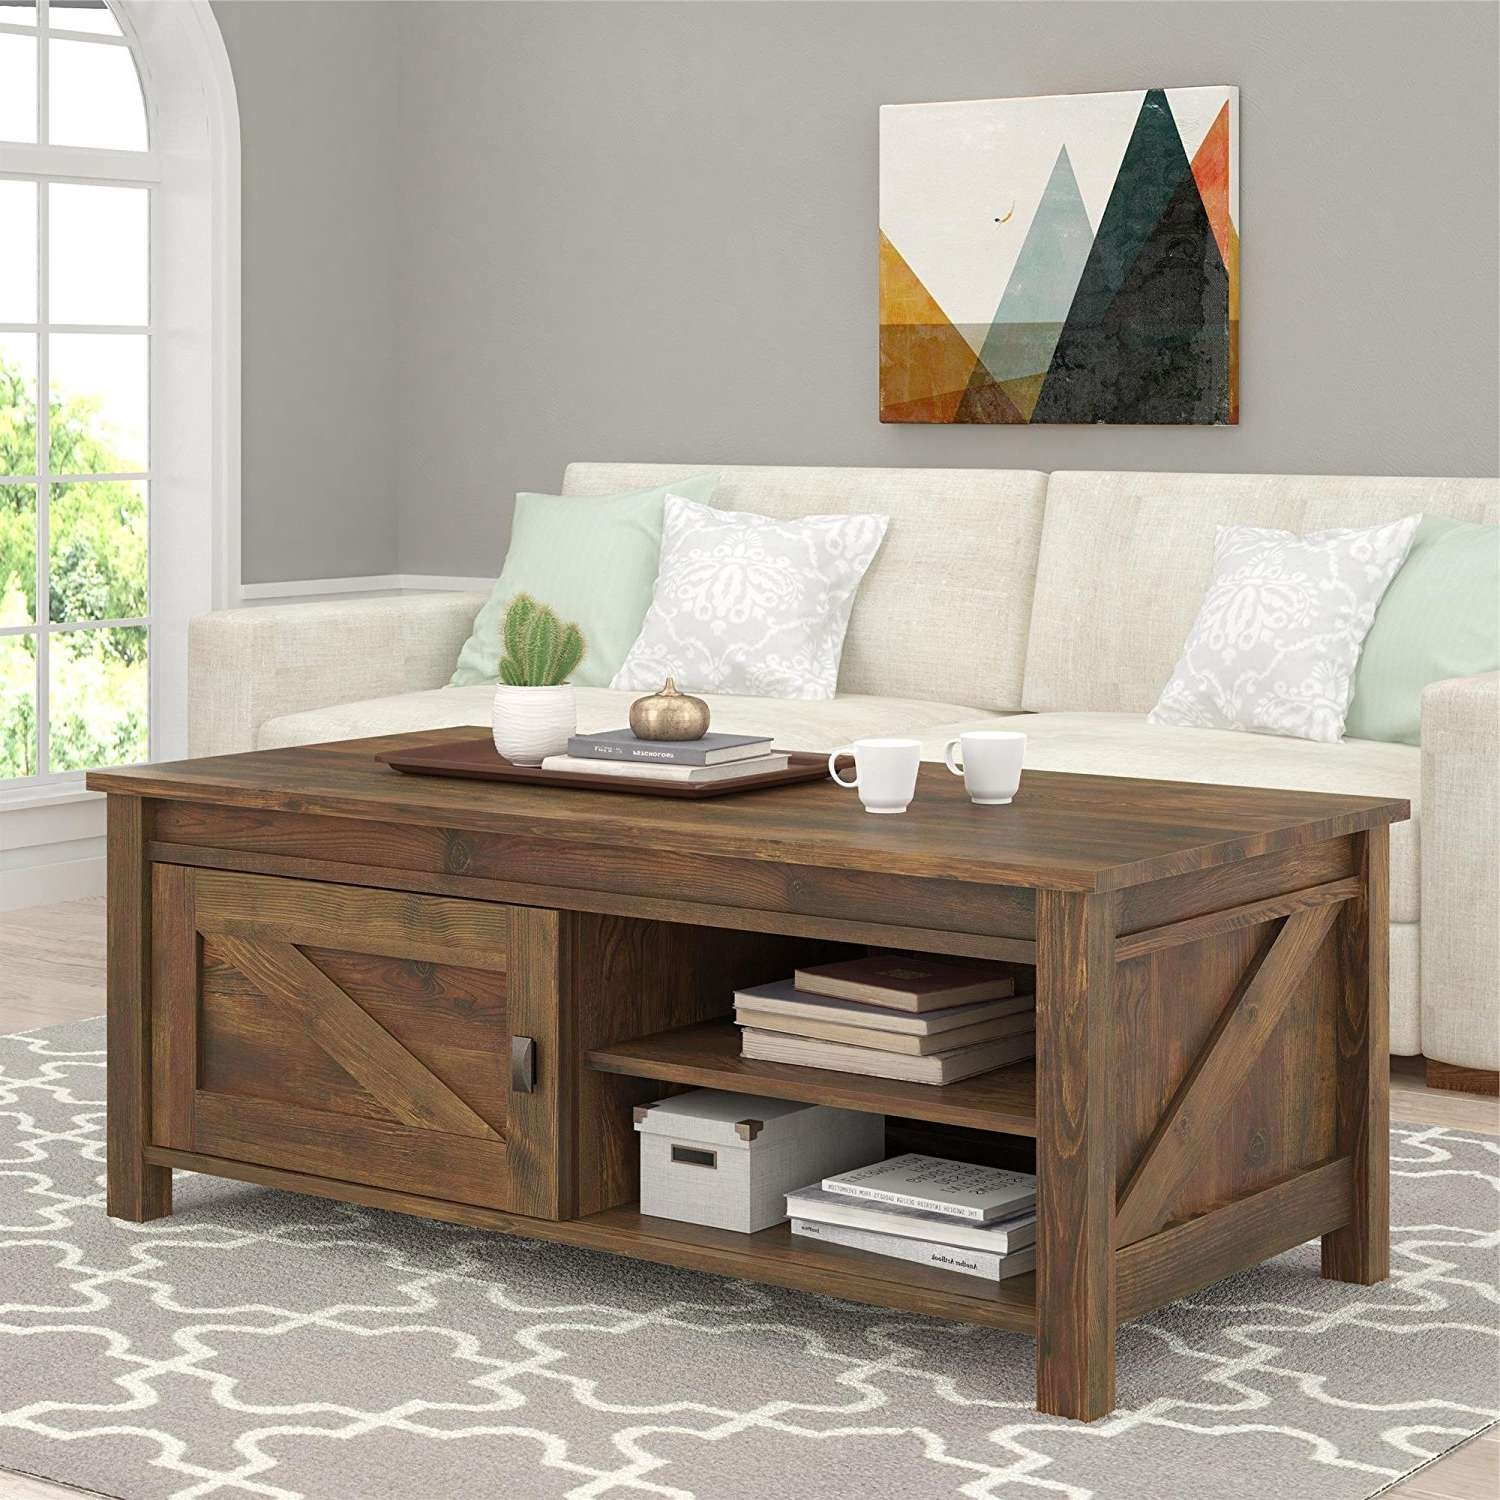 Coffee Tables And Tv Stands Matching – Contemporary Modern For Coffee Tables And Tv Stands Matching (View 10 of 15)